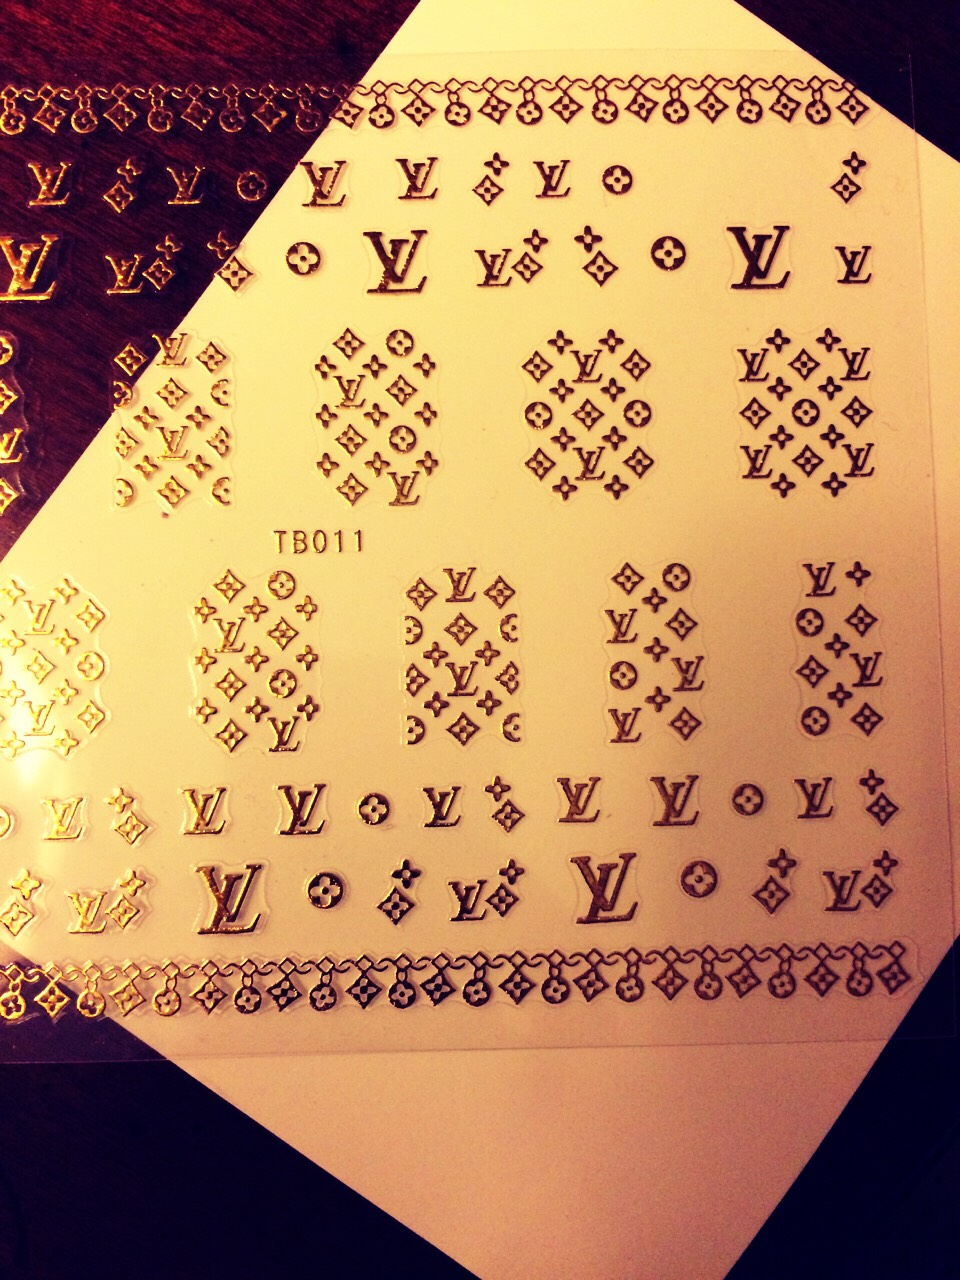 You can purchase these alloy nail decals on eBay for approximately 1-3 dollars